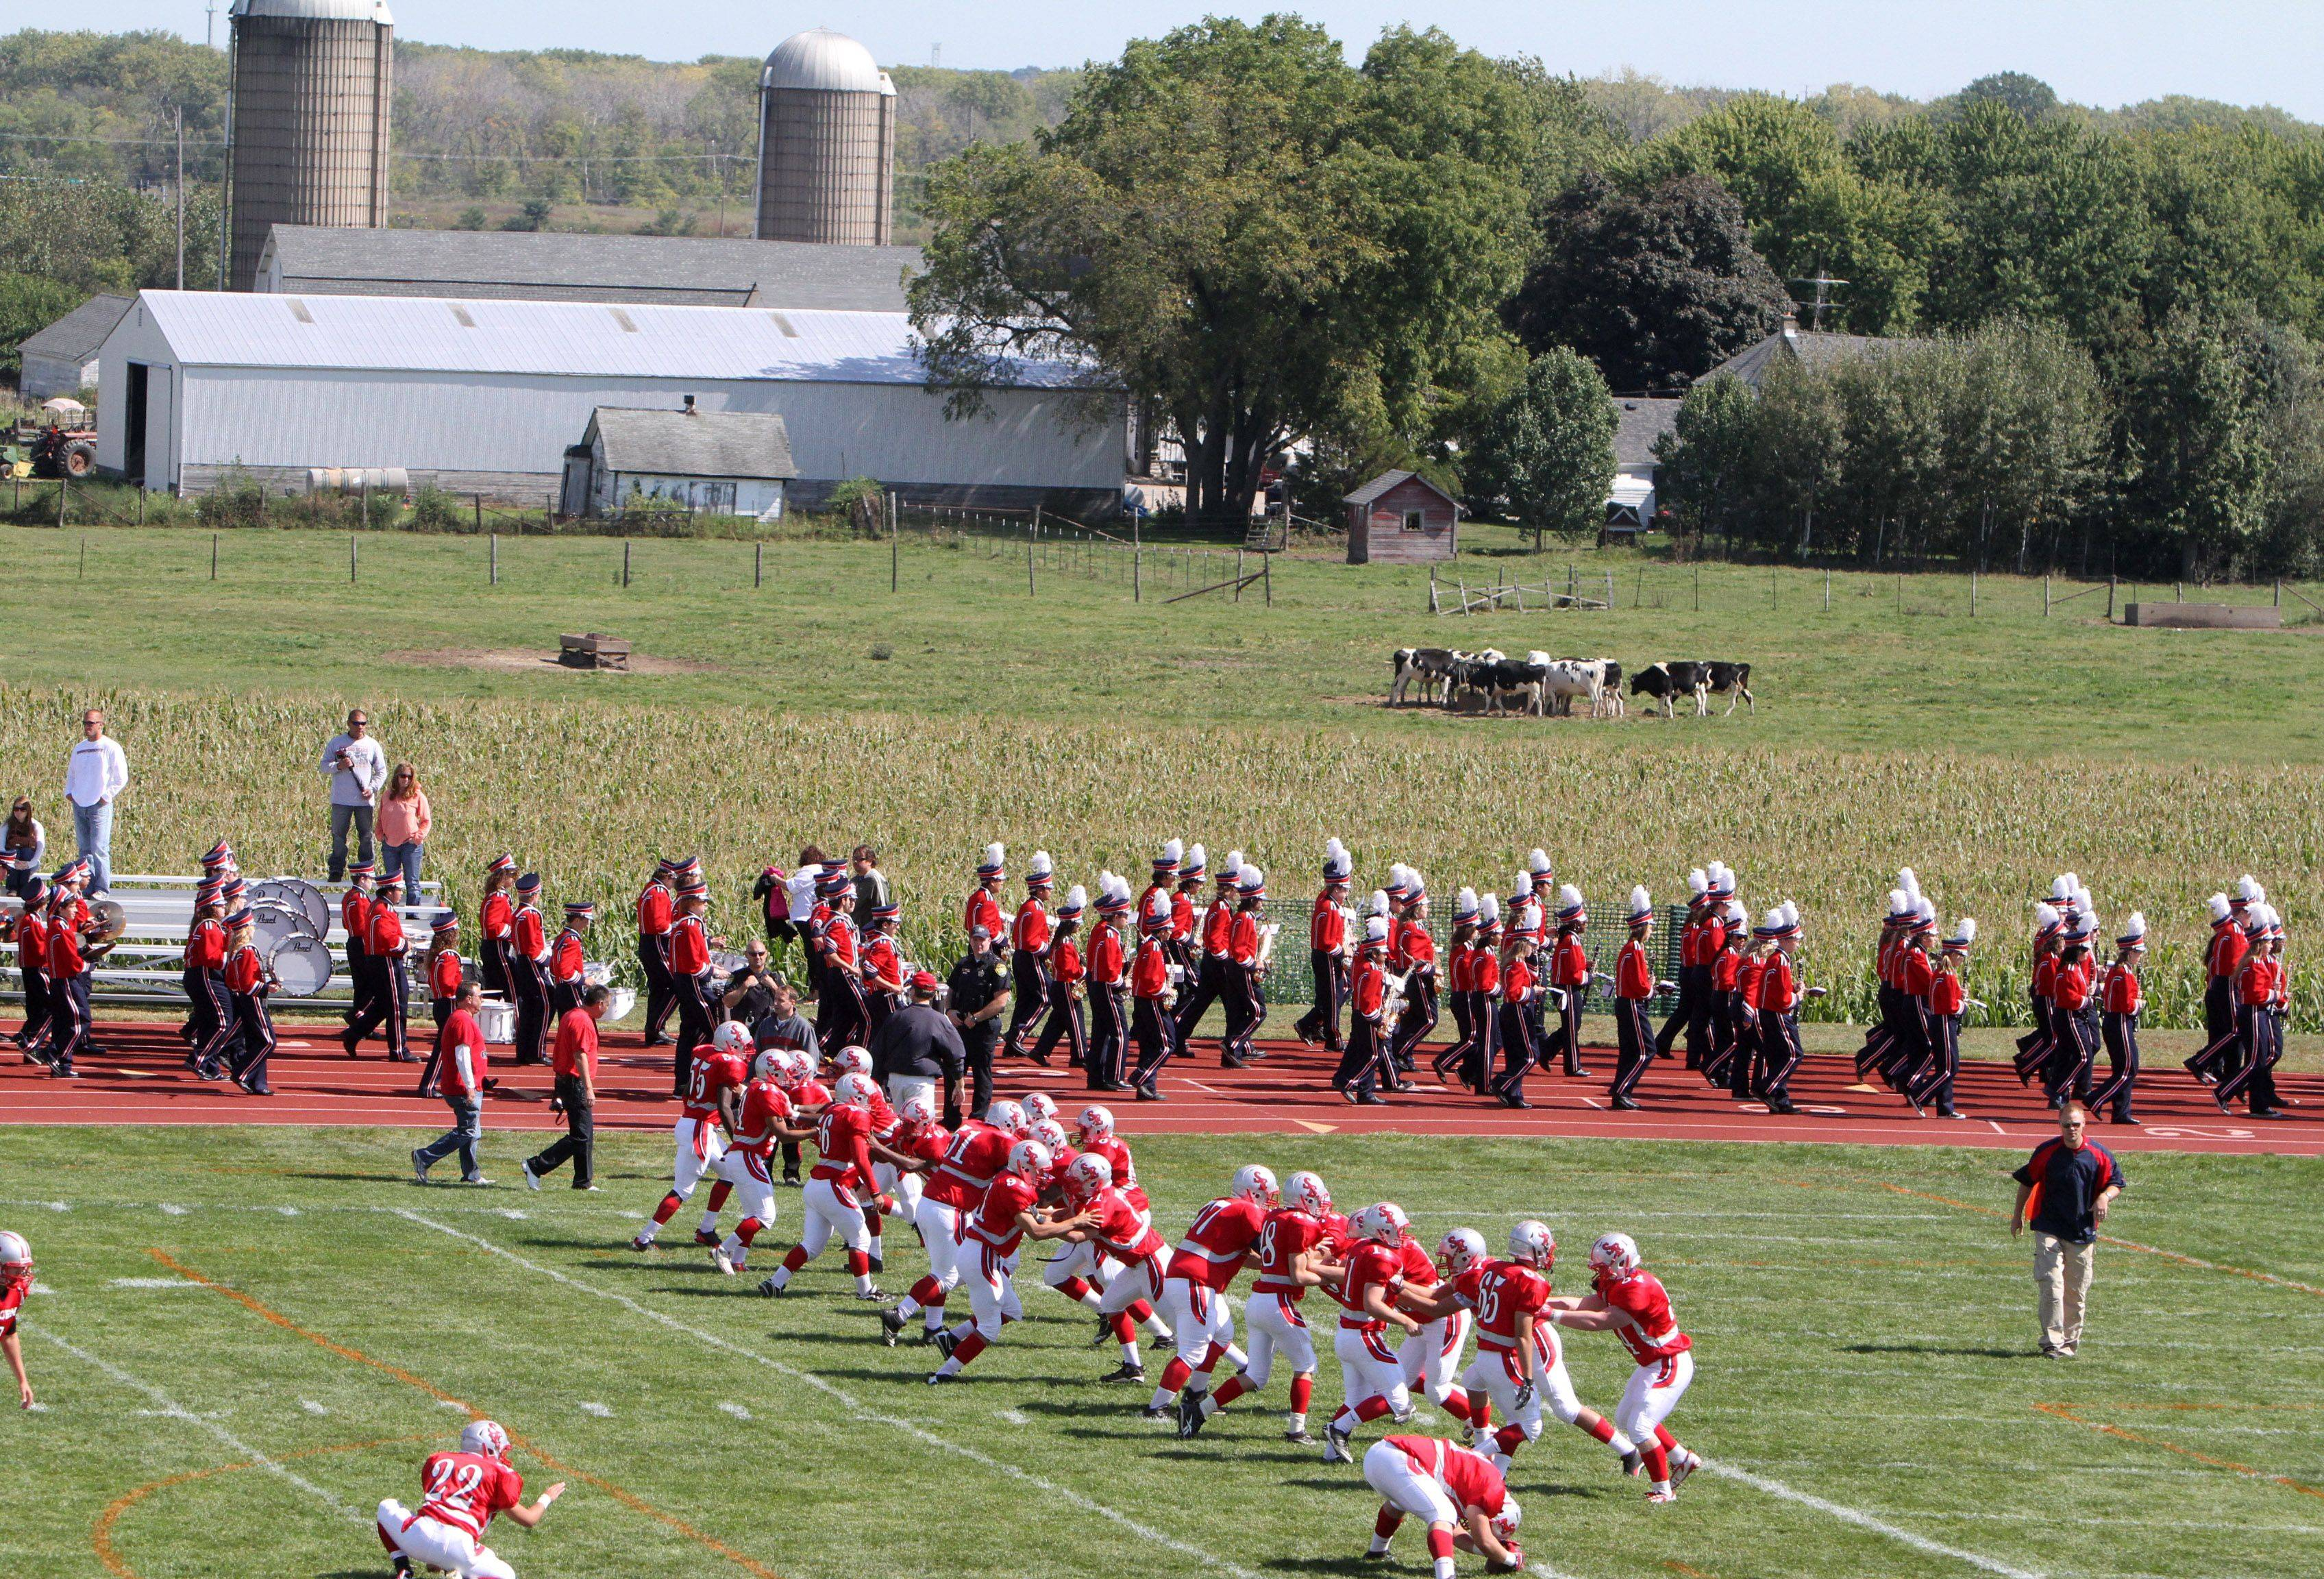 South Elgin's varsity team and band prepare to play Metea Valley at South Elgin on Saturday.